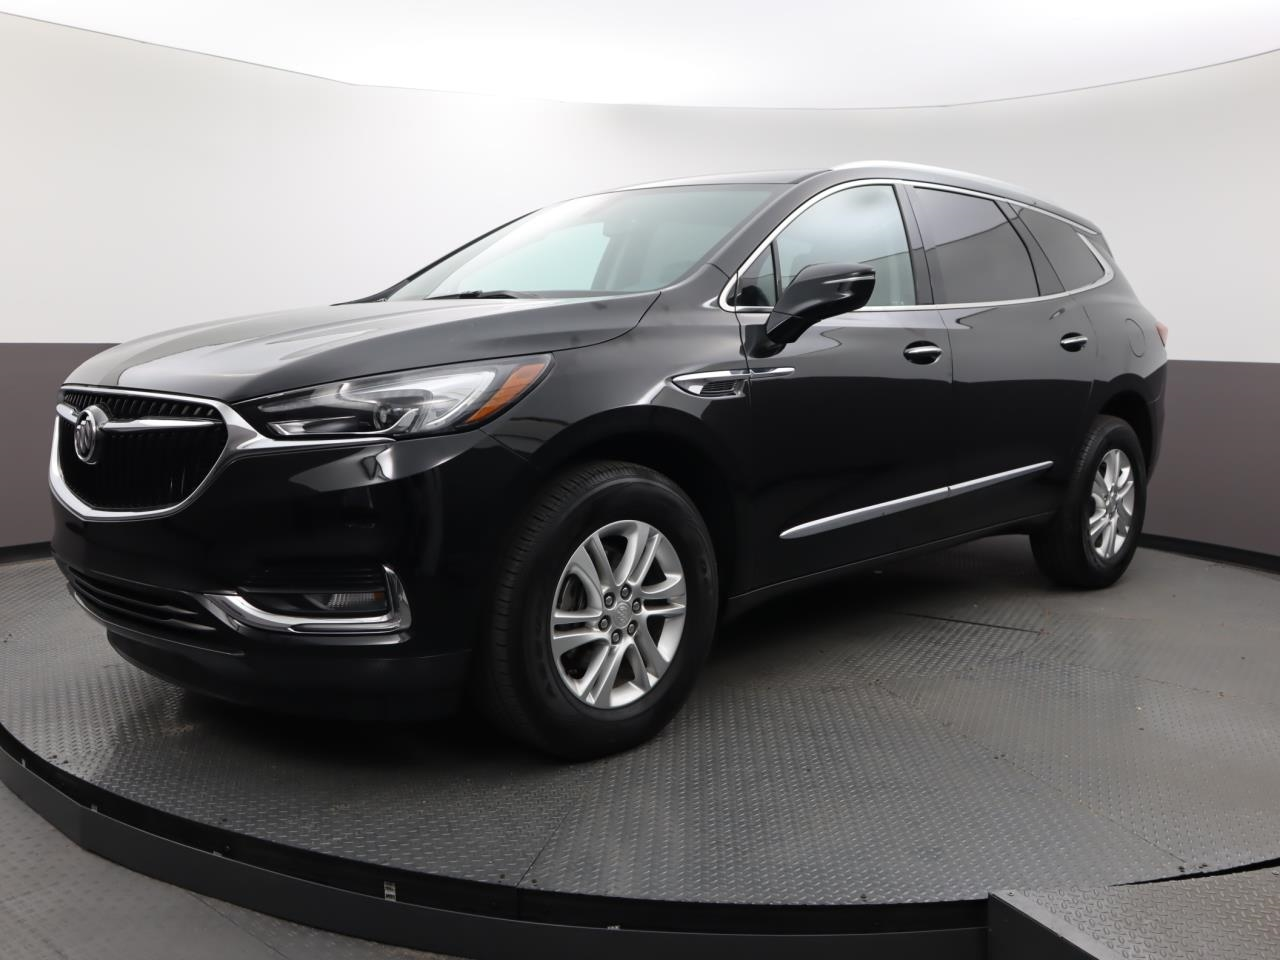 Used BUICK ENCLAVE 2020 MARGATE ESSENCE